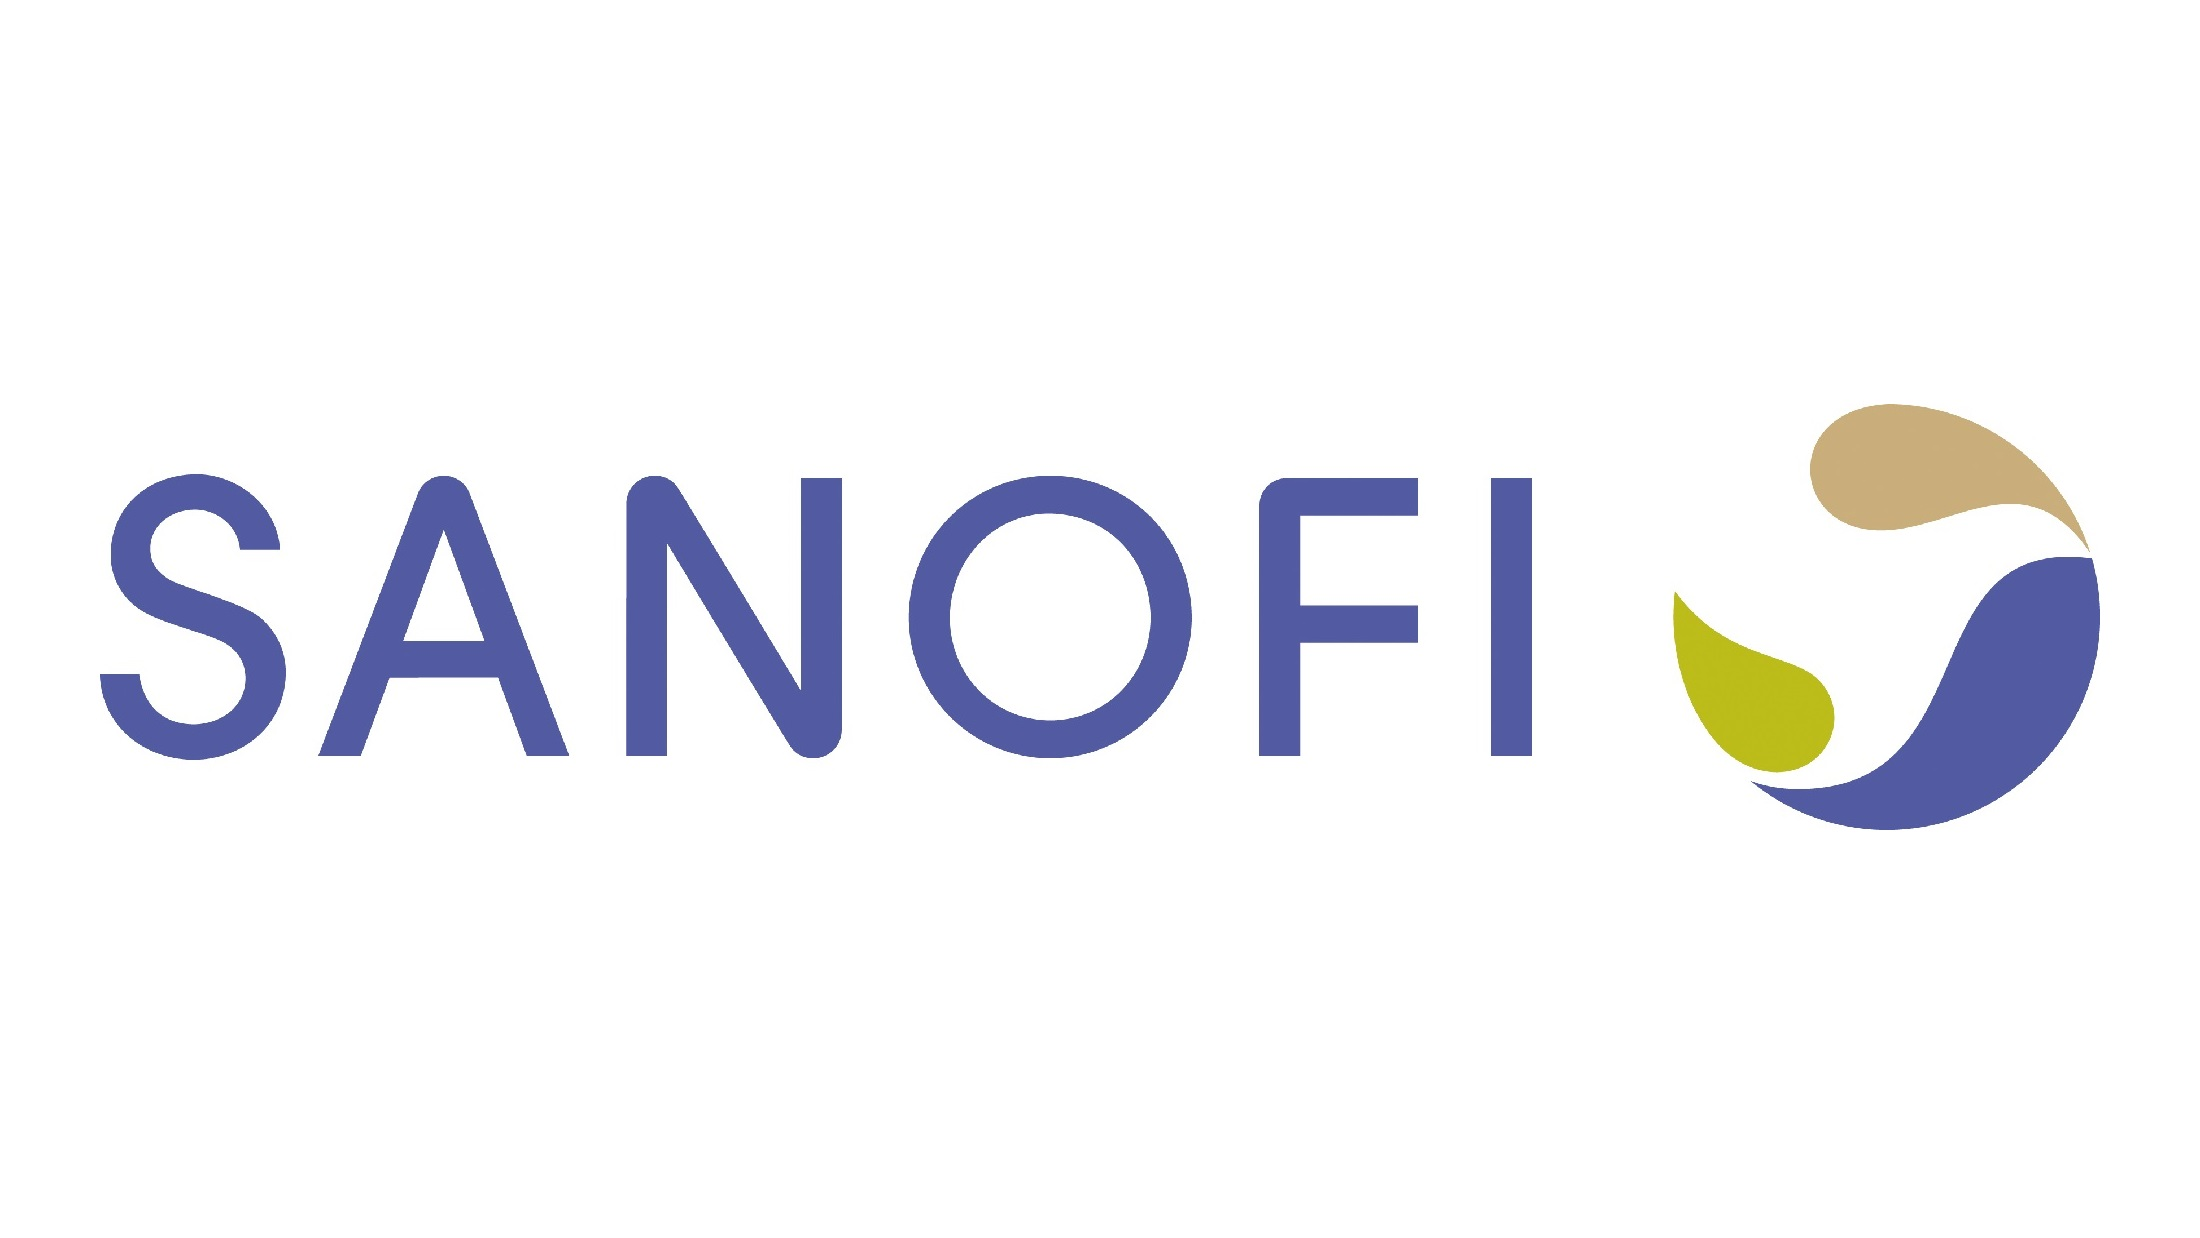 sanofi aventis The sanofi group conducts its business in ireland through its subsidiaries sanofi-aventis ireland limited, genzyme ireland limited and genzyme therapeutics limited.